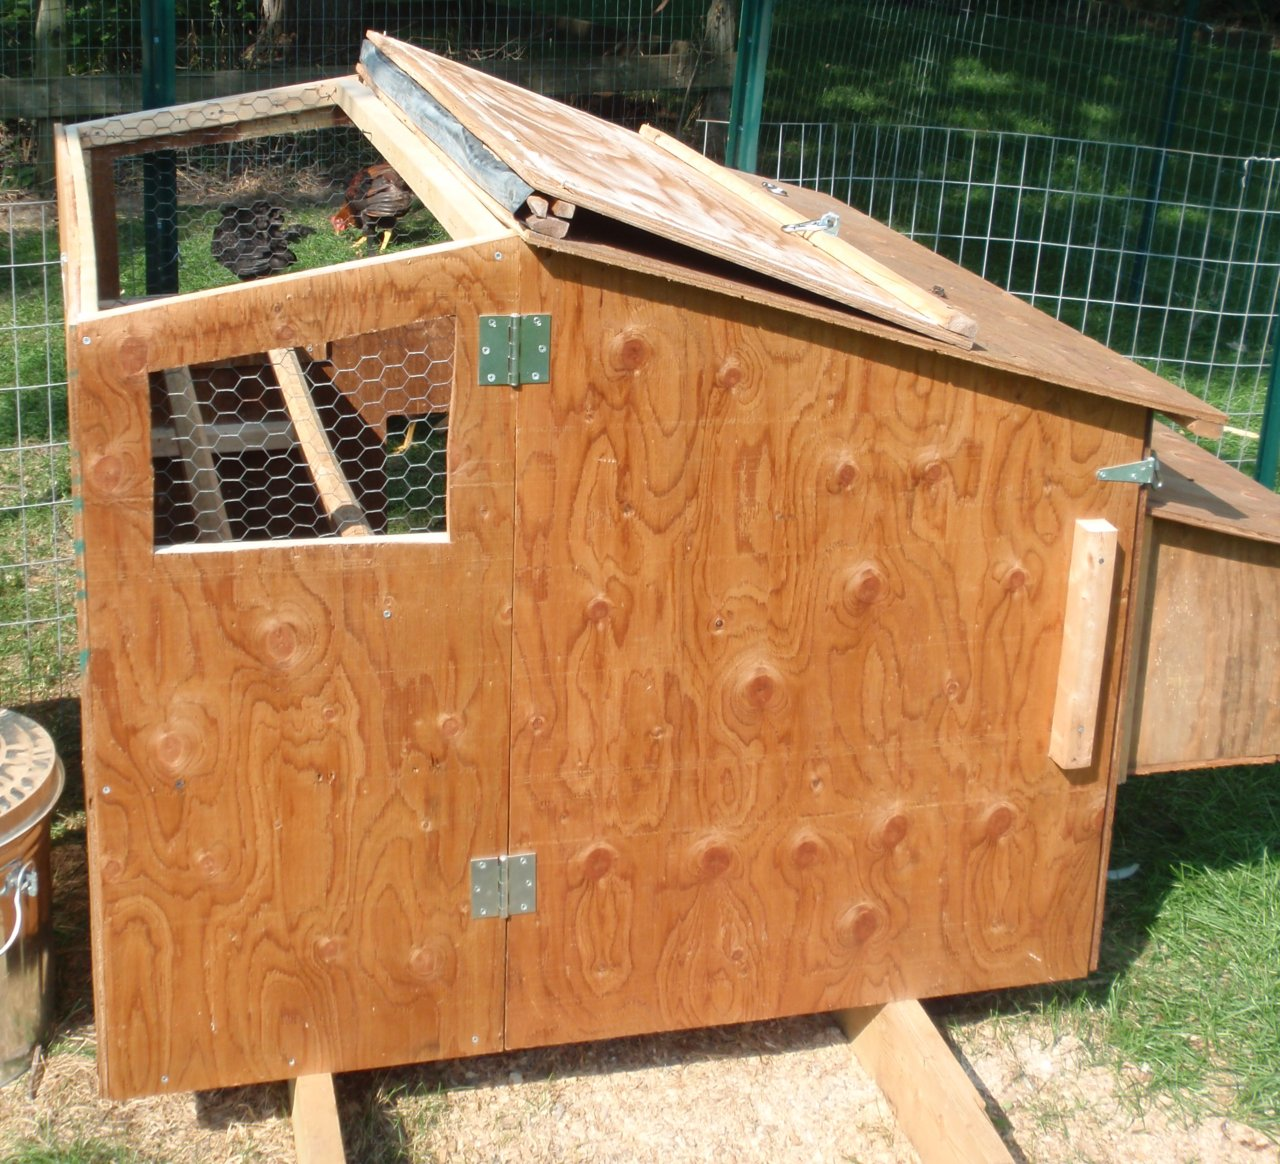 A Low Cost Rubber Membrane For Chicken Coop Roofs